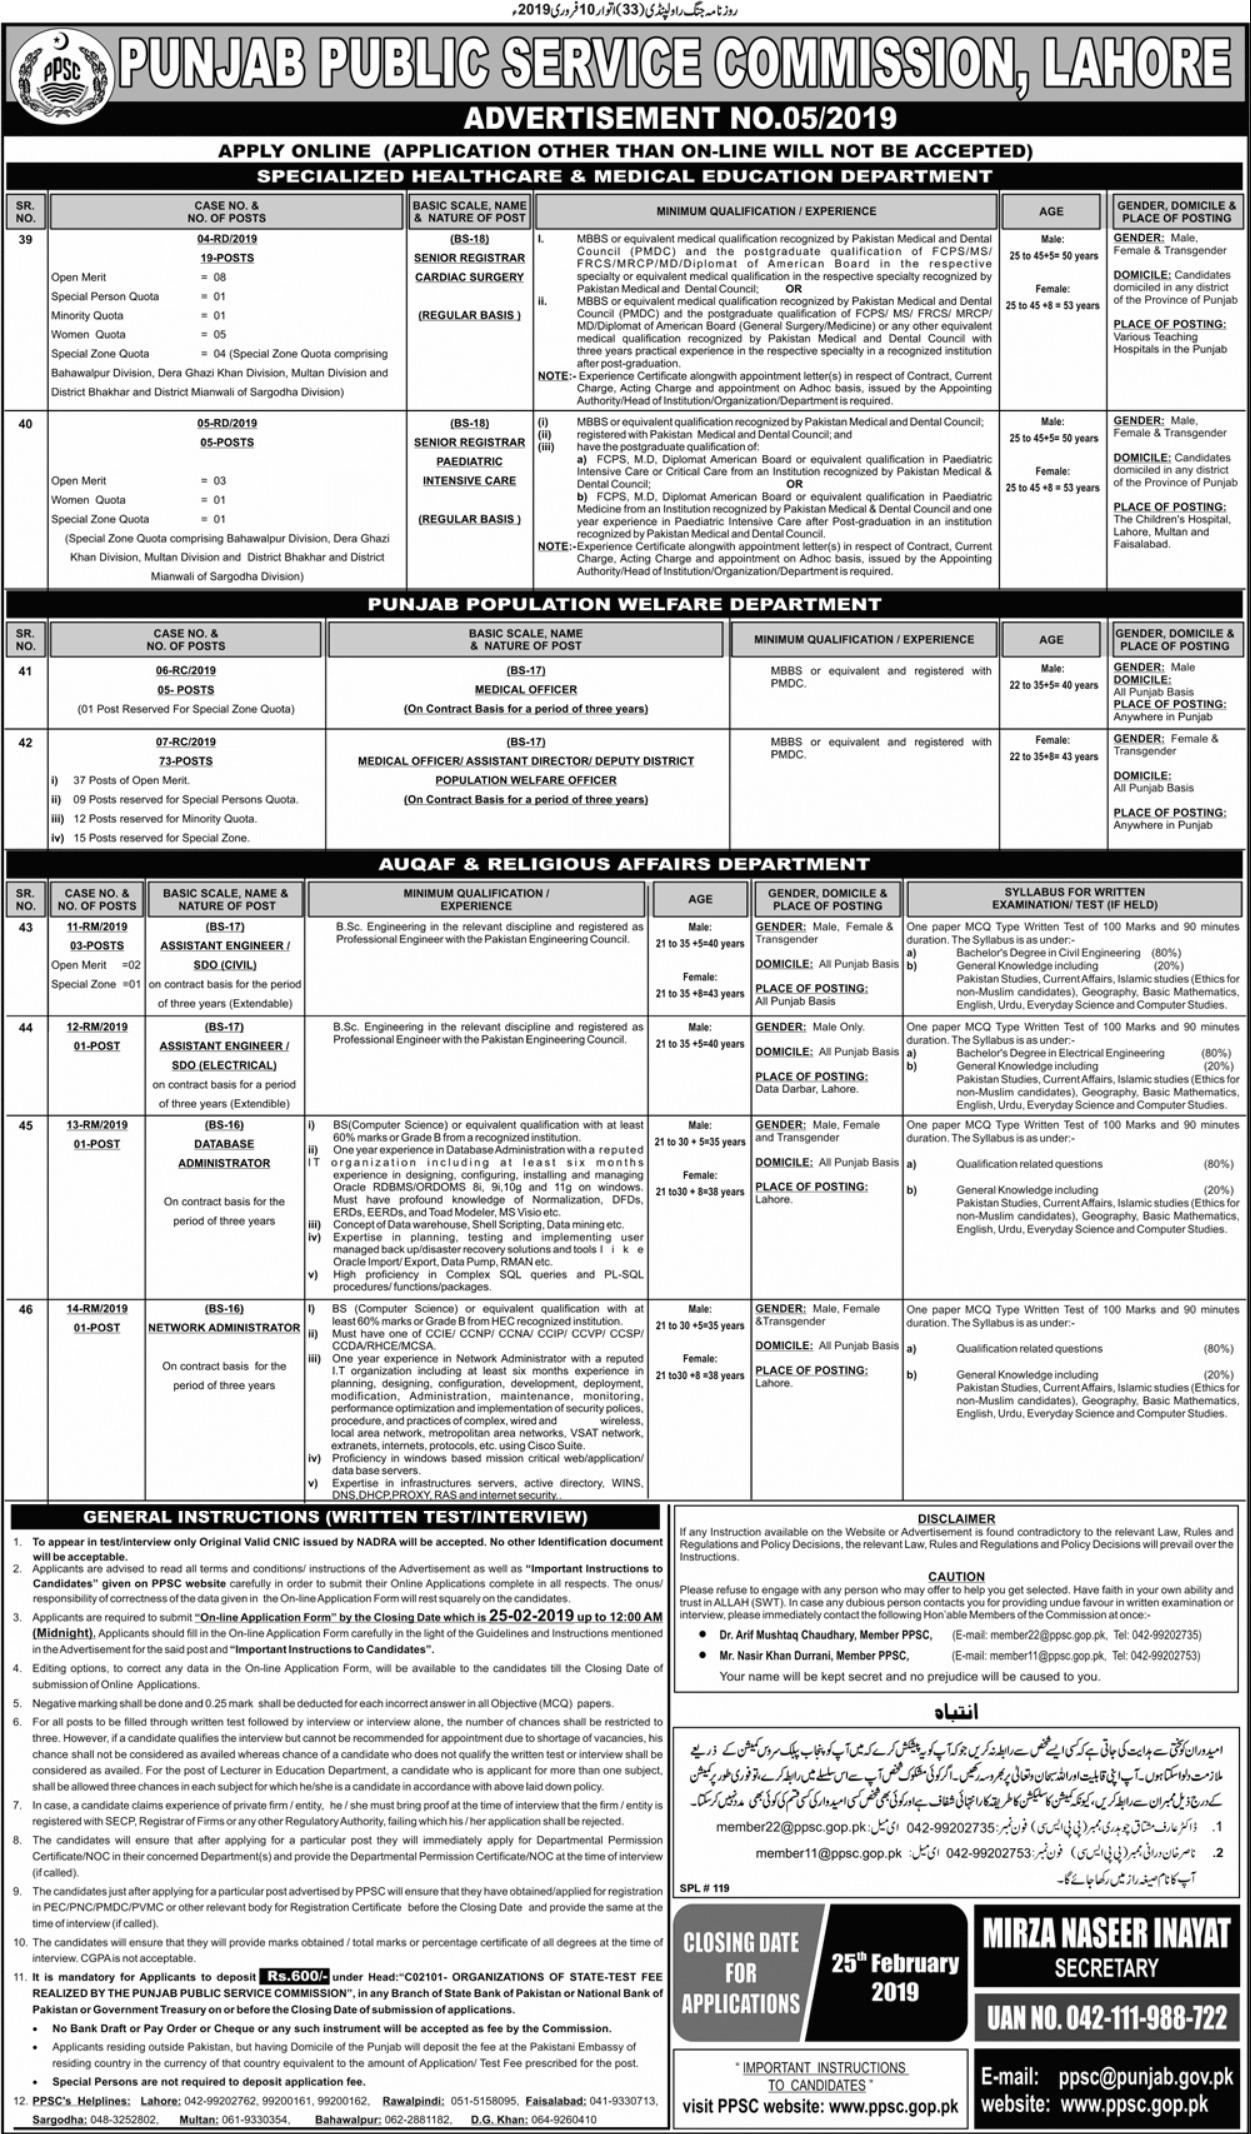 PPSC Jobs 2019 Punjab Public Service Commission